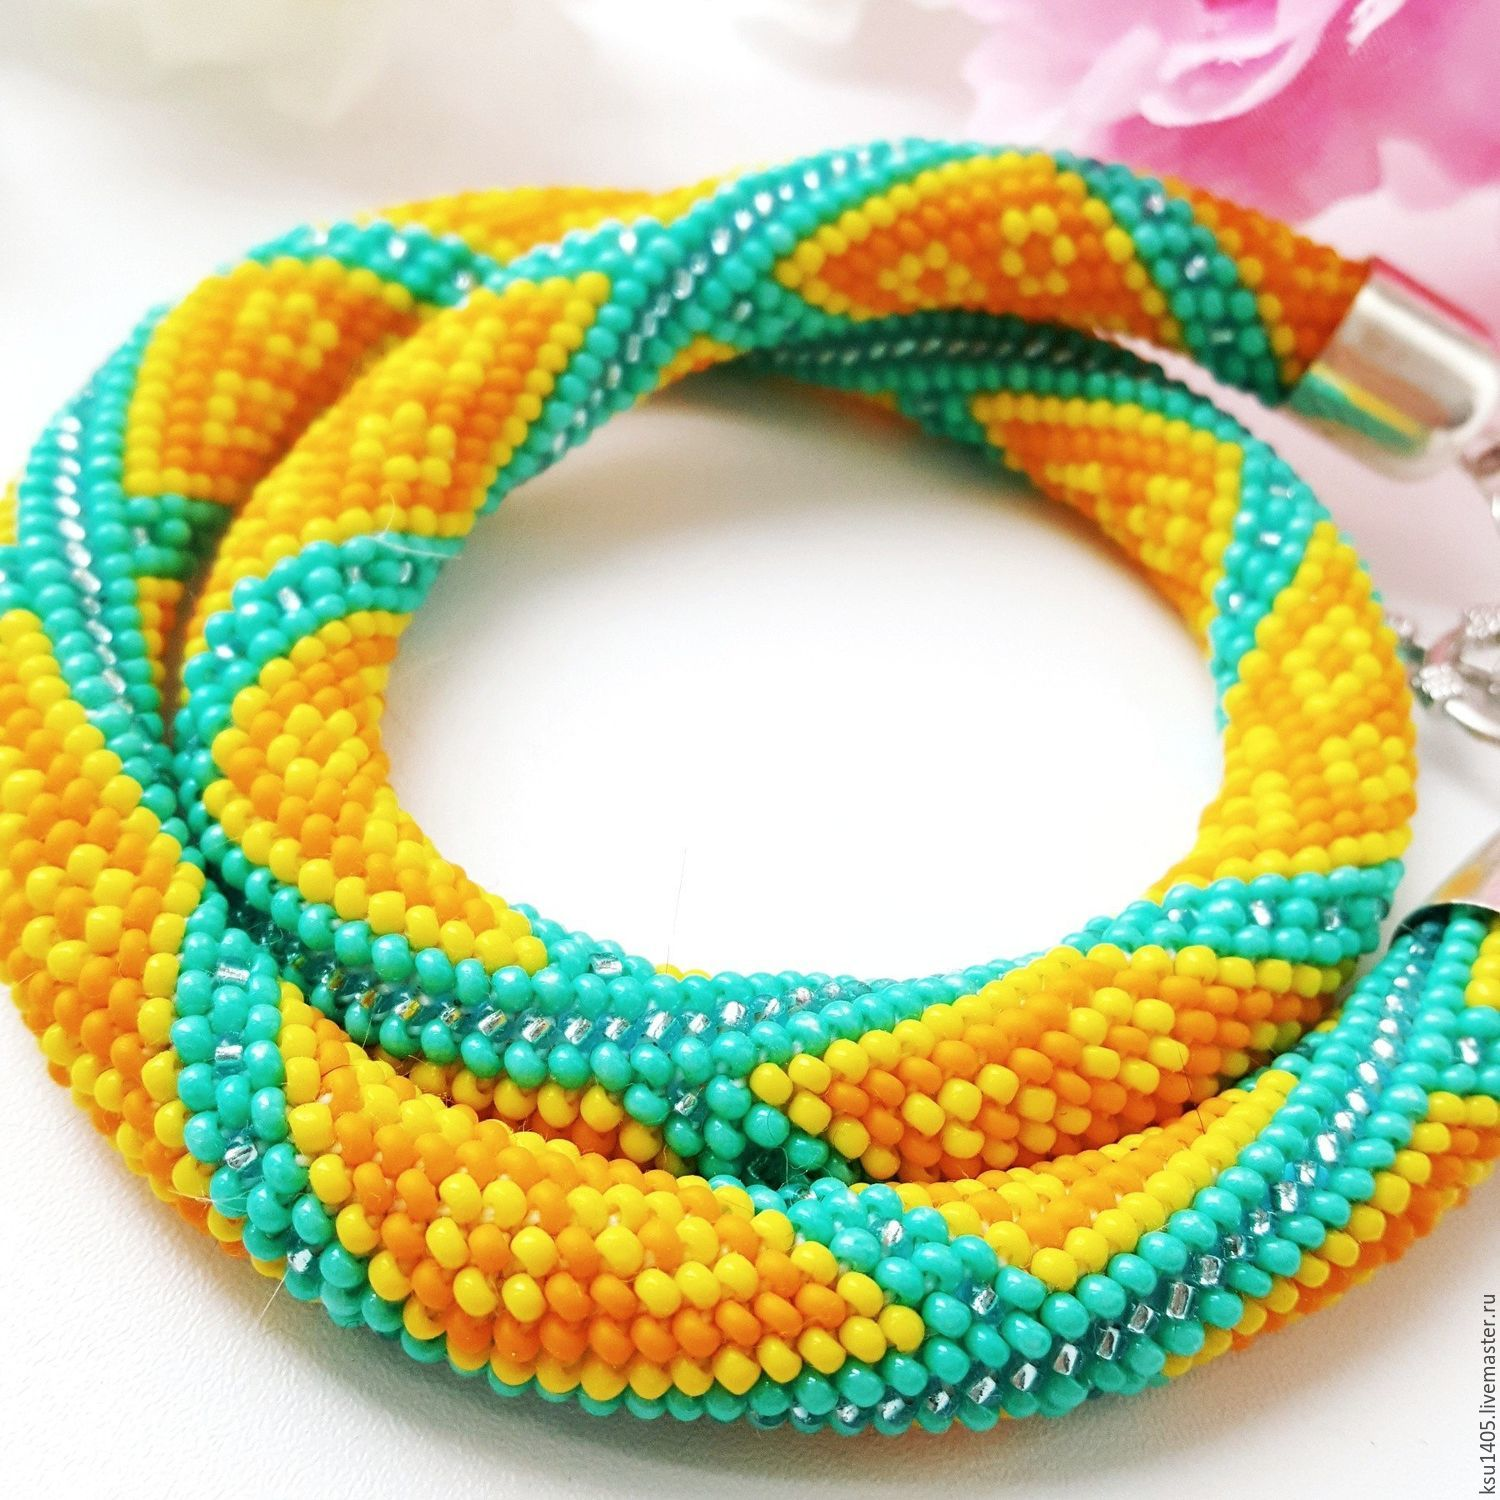 Harness-beaded necklace 'Citrus mix', Necklace, St. Petersburg,  Фото №1